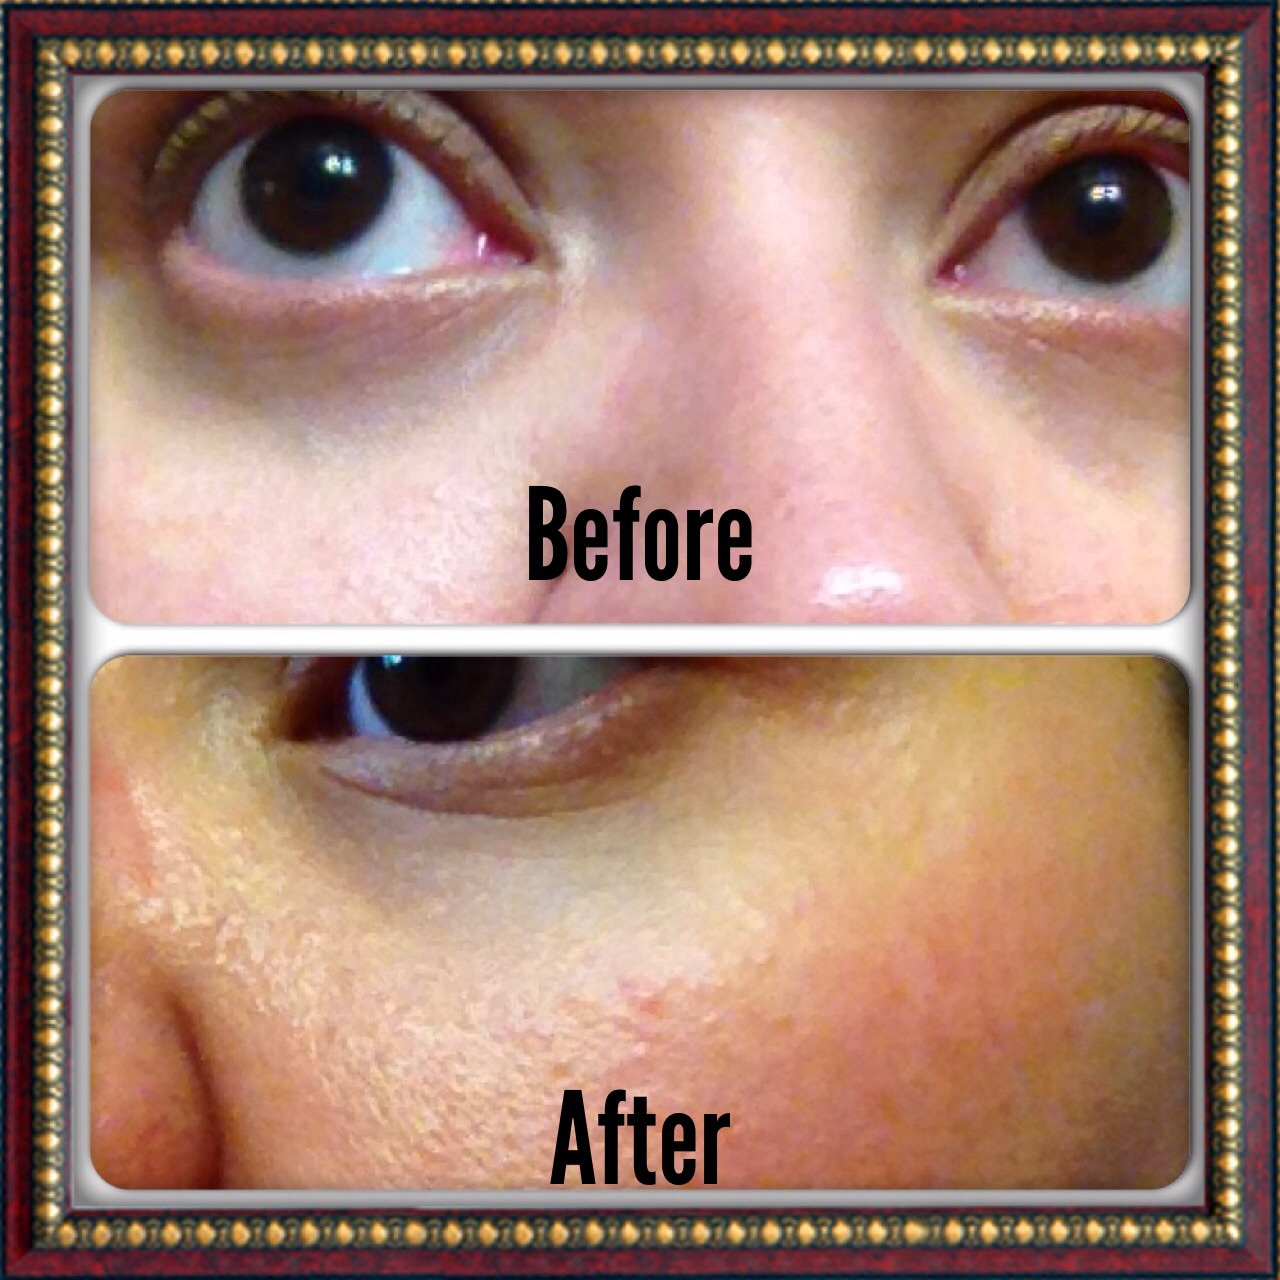 Cerave Eye Cream Reviews Cosmetics Pictranslator